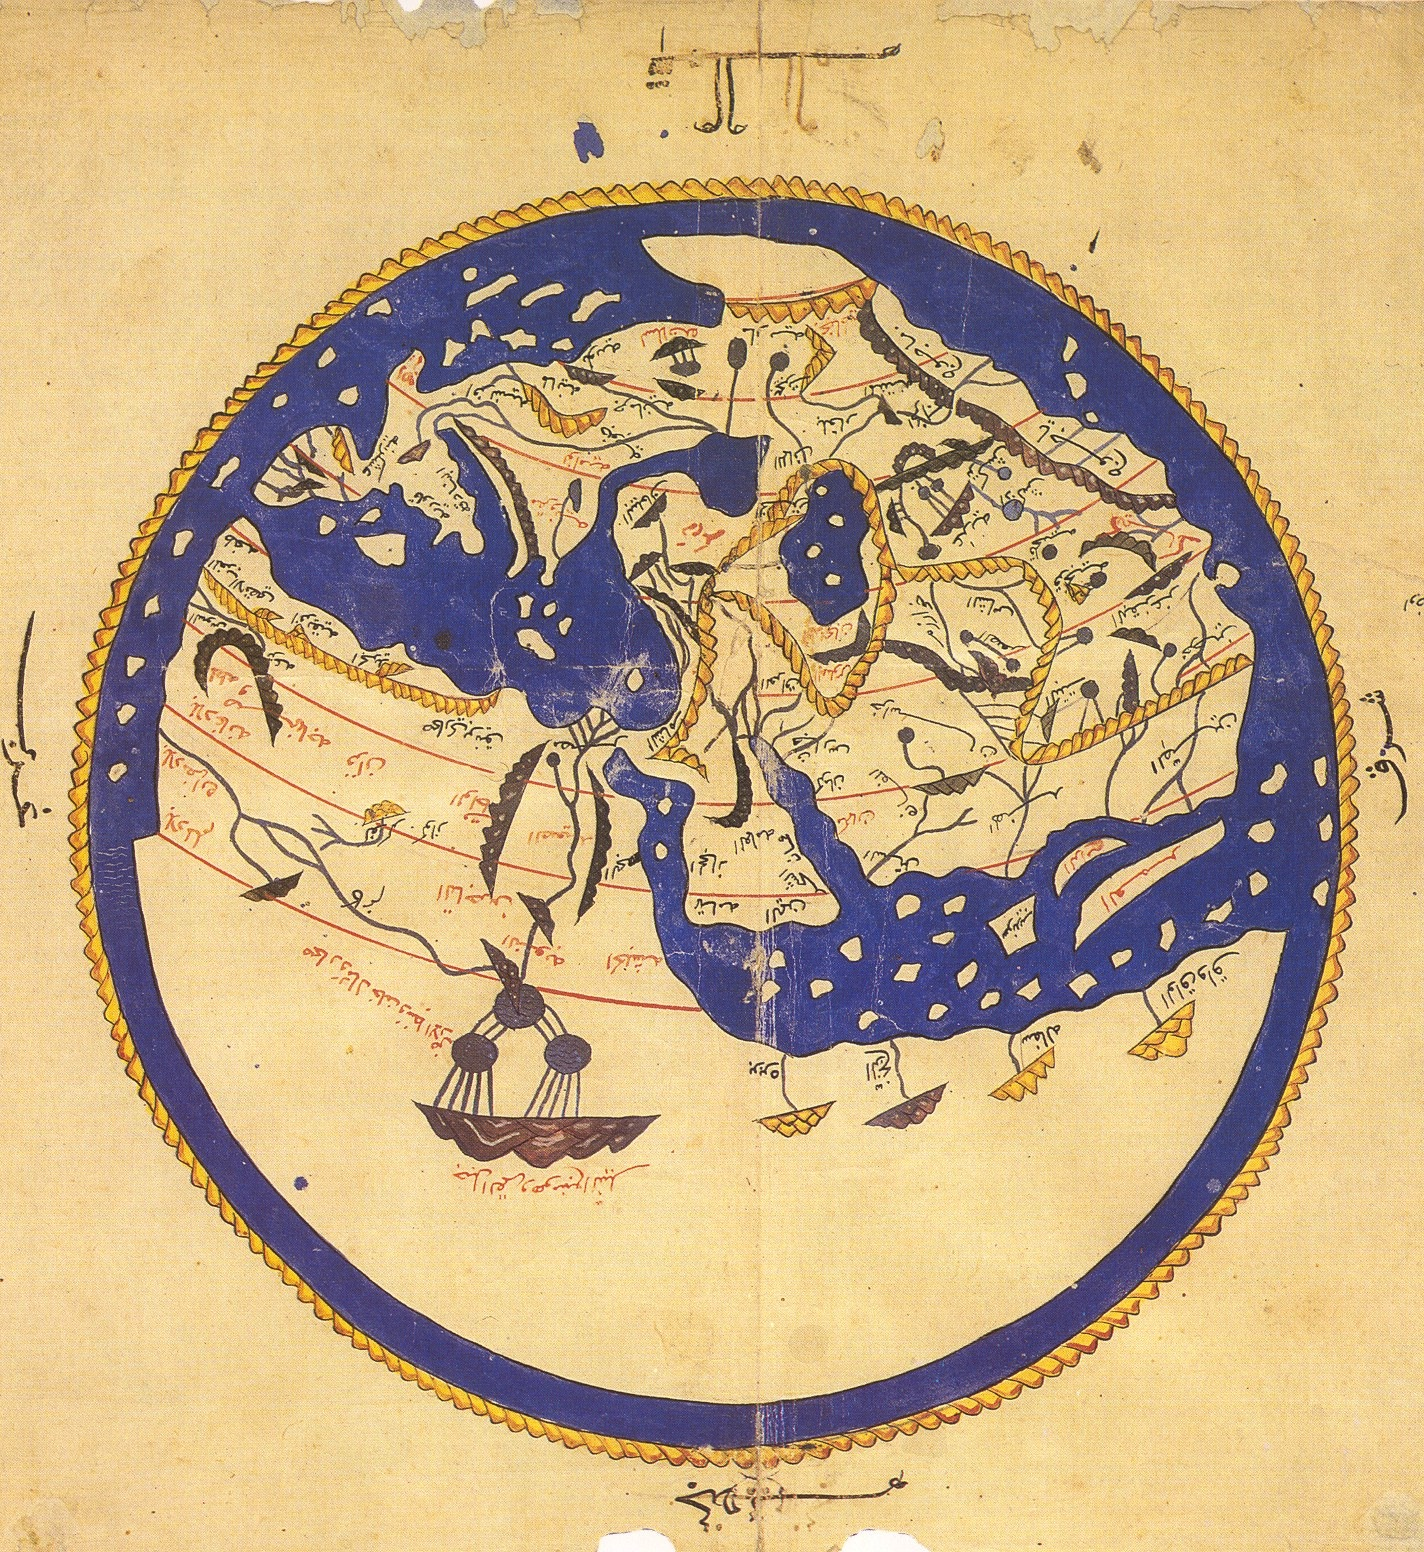 The Cantino Planisphere